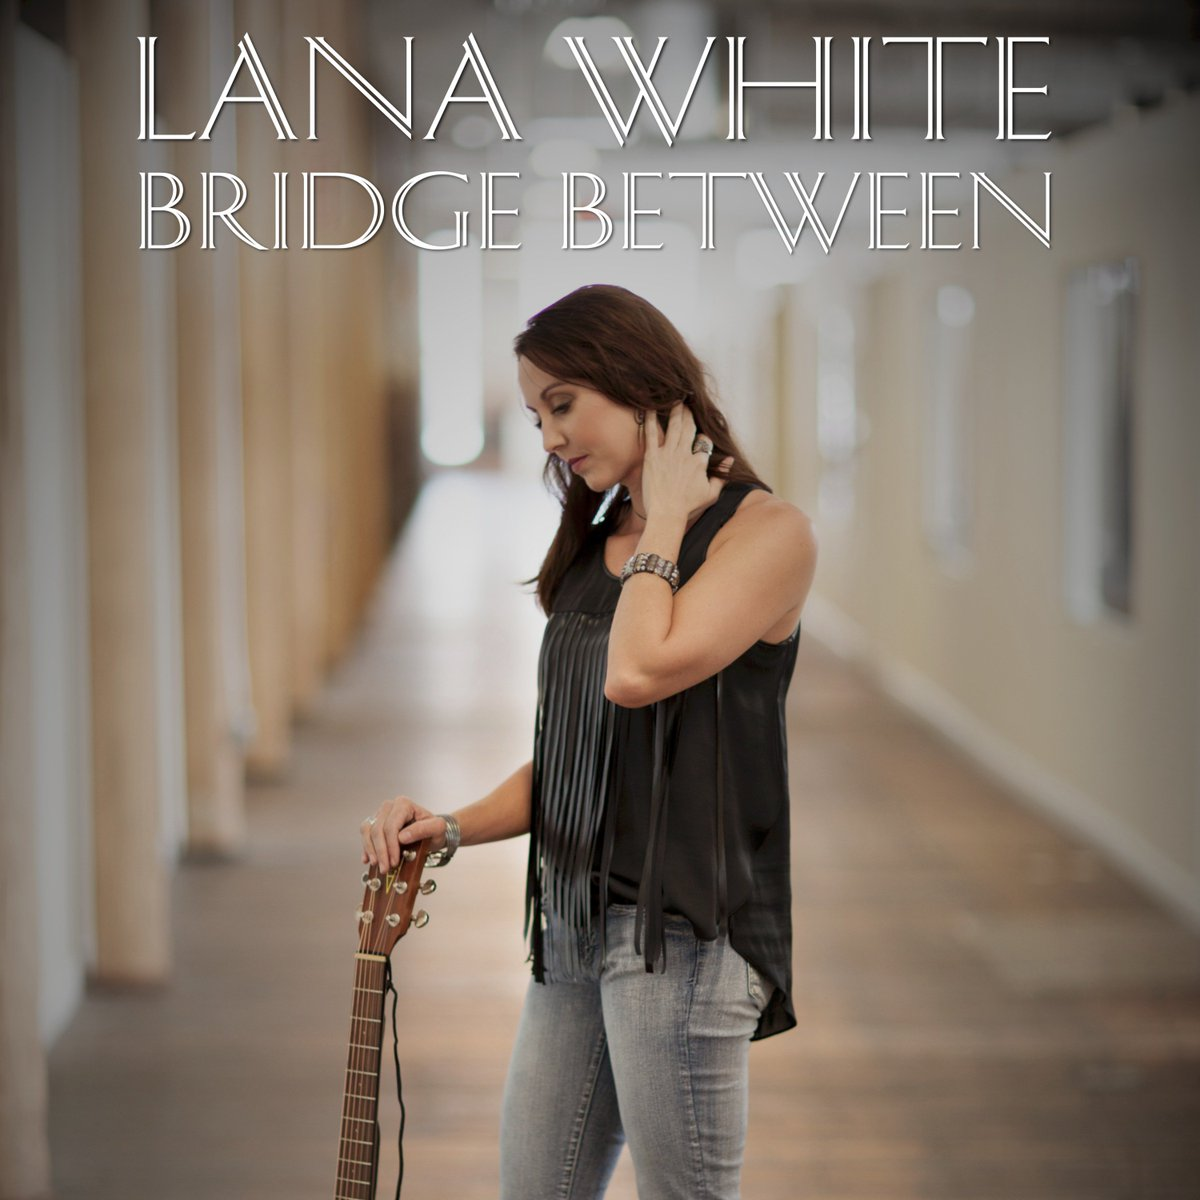 New 10 song album dropping soon! Very soon... Stay tuned! #NewAlbum #IndieMusic #AllOriginals #LanaWhite #iTunes #Amazon #Spotify<br>http://pic.twitter.com/DduwfVznXj